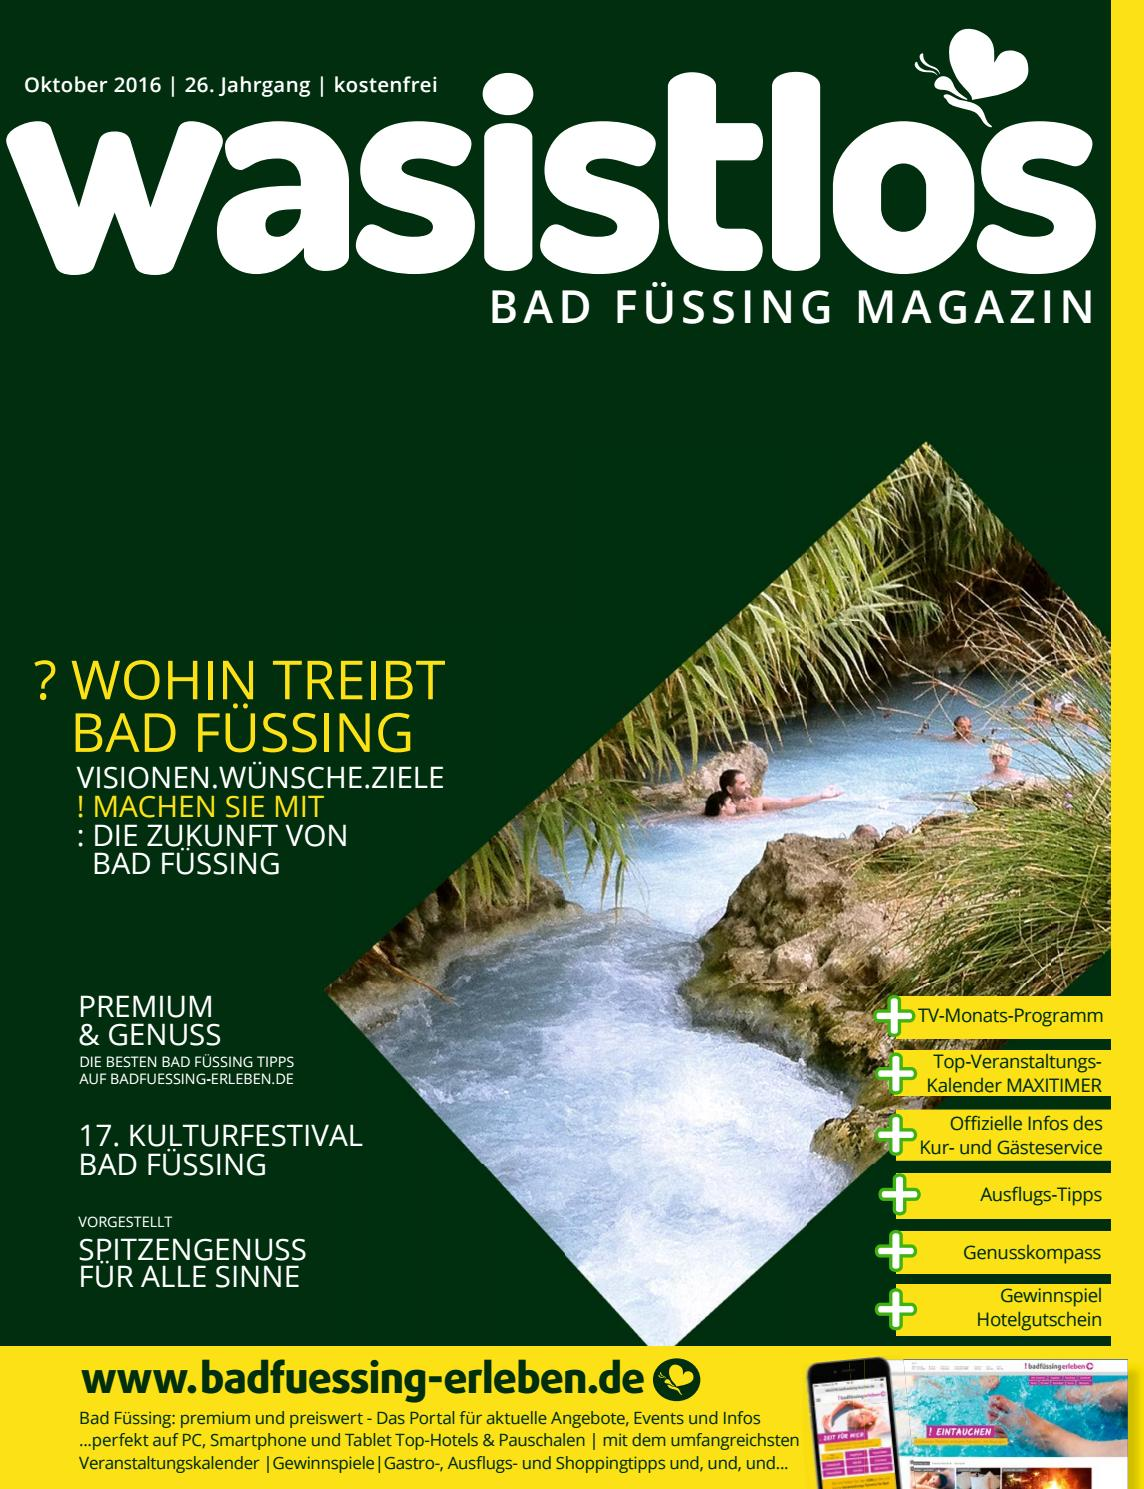 Wasistlos Bad Fuessing Magazin Oktober 2016 by remark marketing + ...